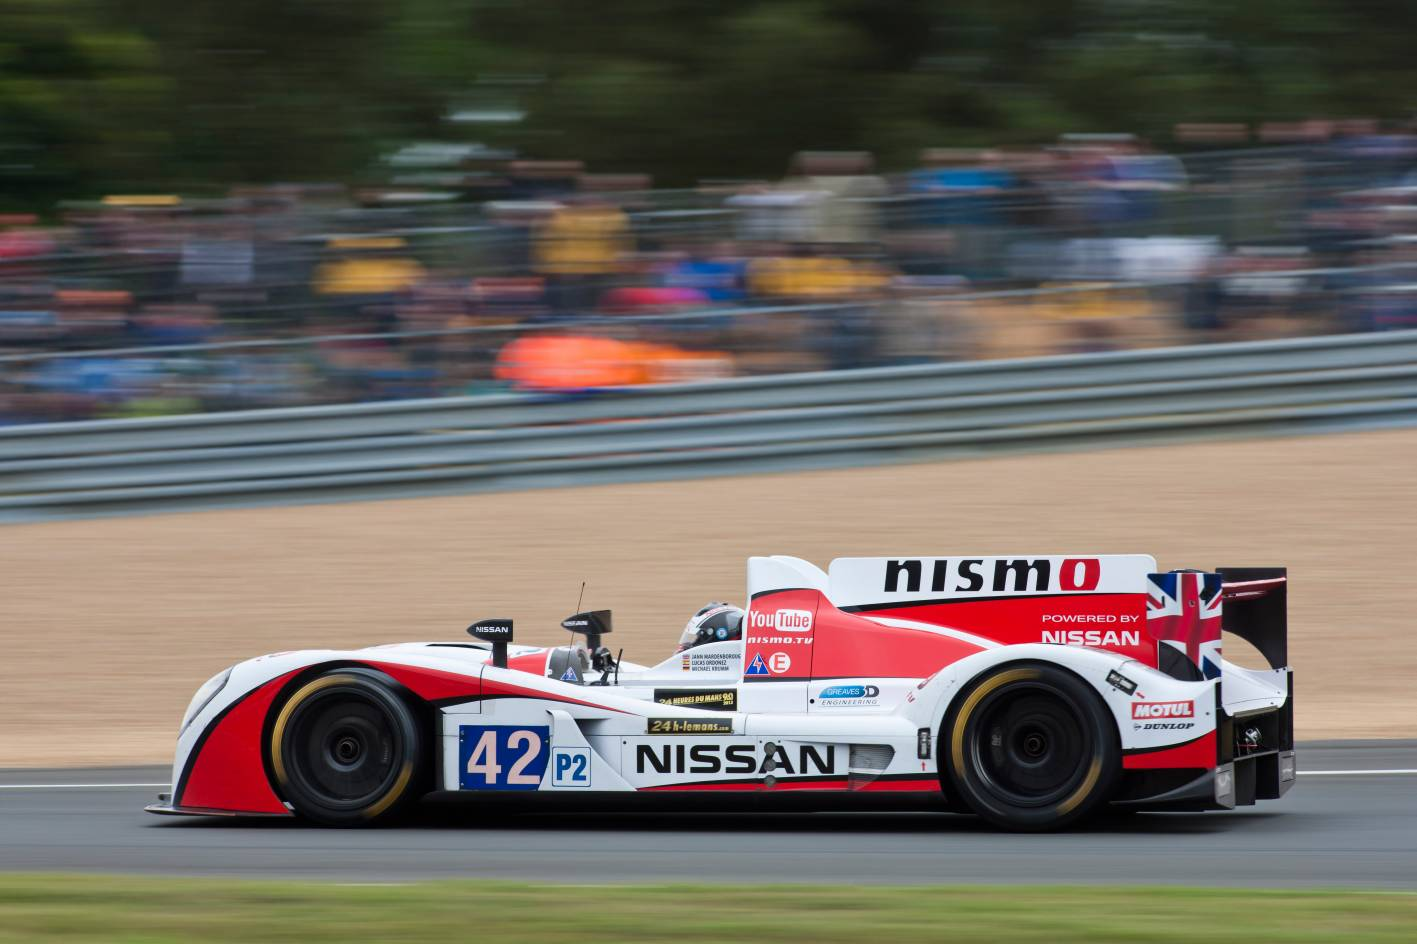 nissan charges to top five in lm p2 class at 2013 le mans 24 hours. Black Bedroom Furniture Sets. Home Design Ideas